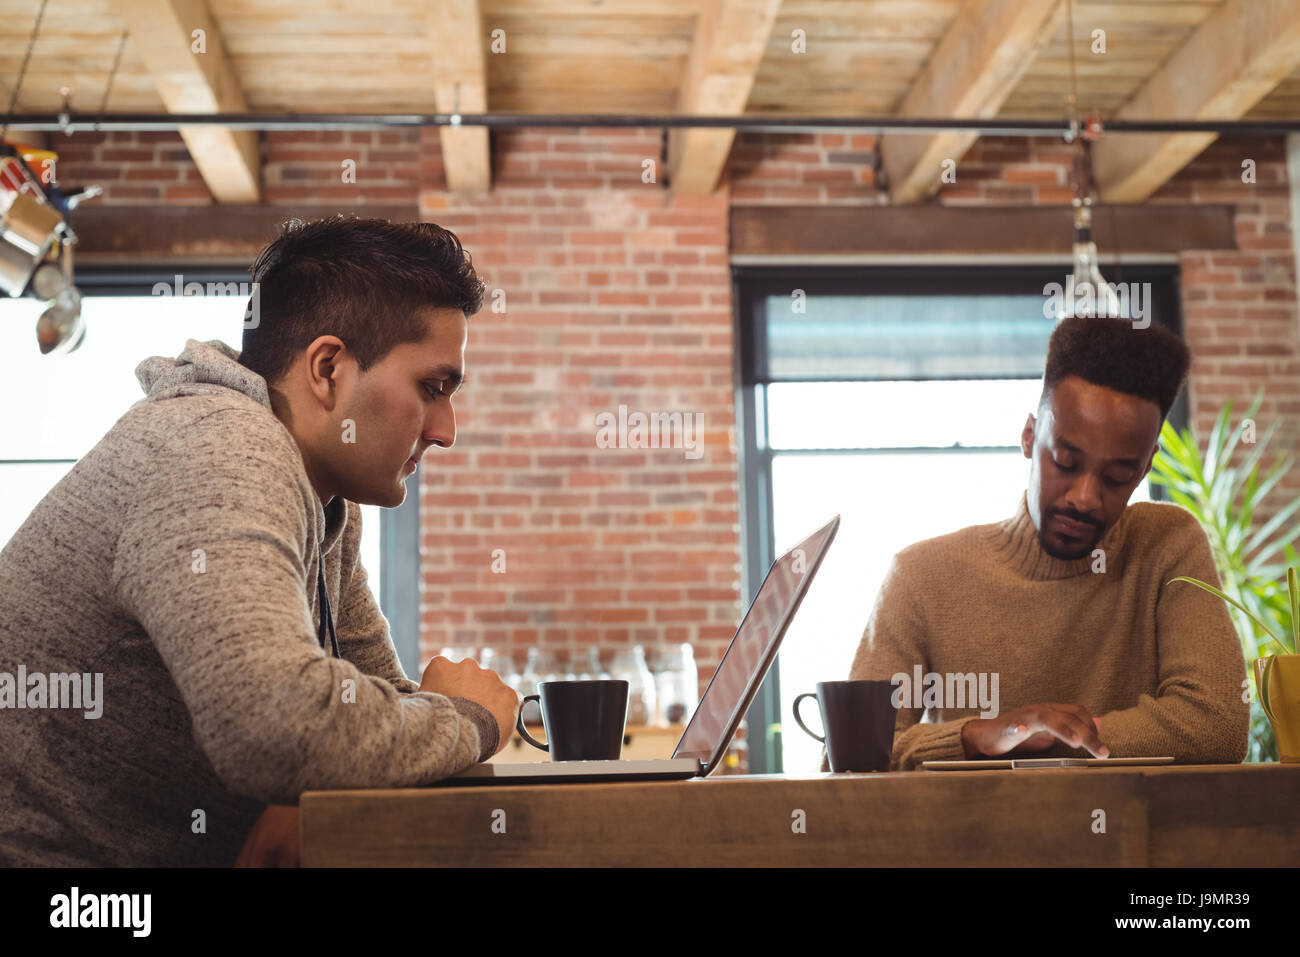 6f8a6bad27 Gay couple using digital tablet and laptop while having coffee at home -  Stock Image